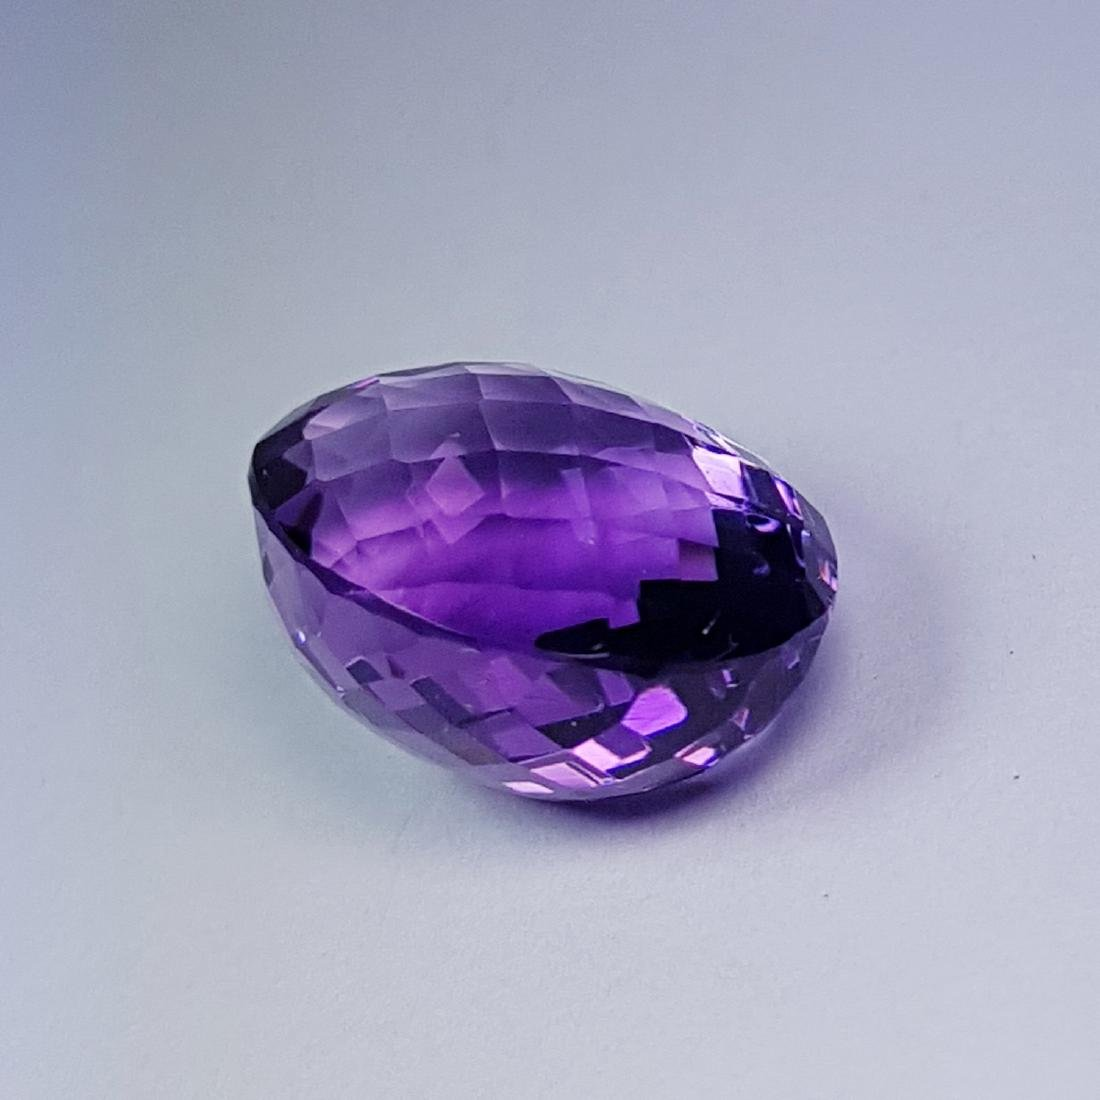 Natural Amethyst - 15.88 ct - 2